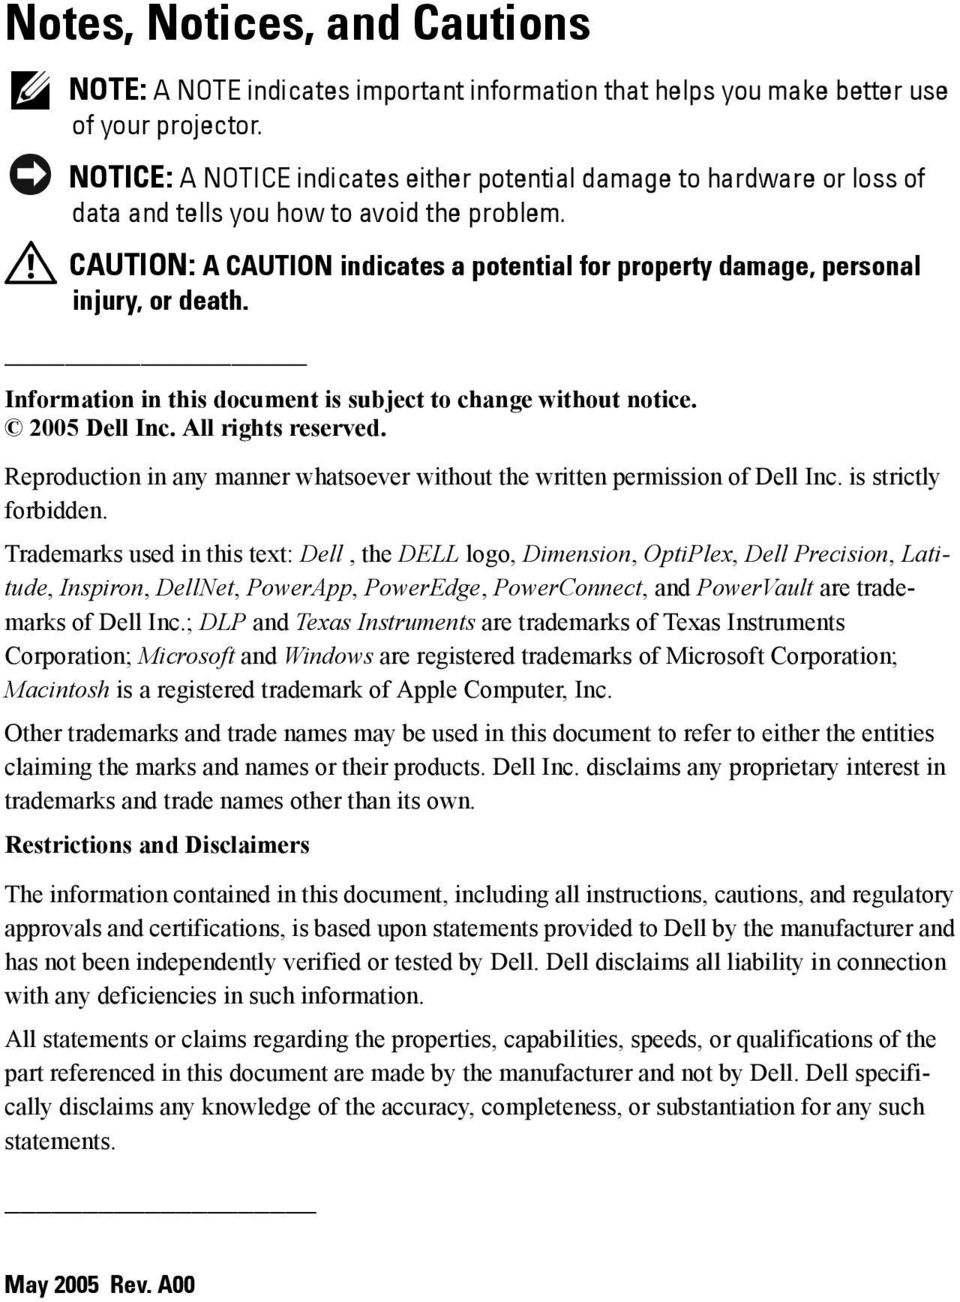 CAUTION: A CAUTION indicates a potential for property damage, personal injury, or death. Information in this document is subject to change without notice. 2005 Dell Inc. All rights reserved.